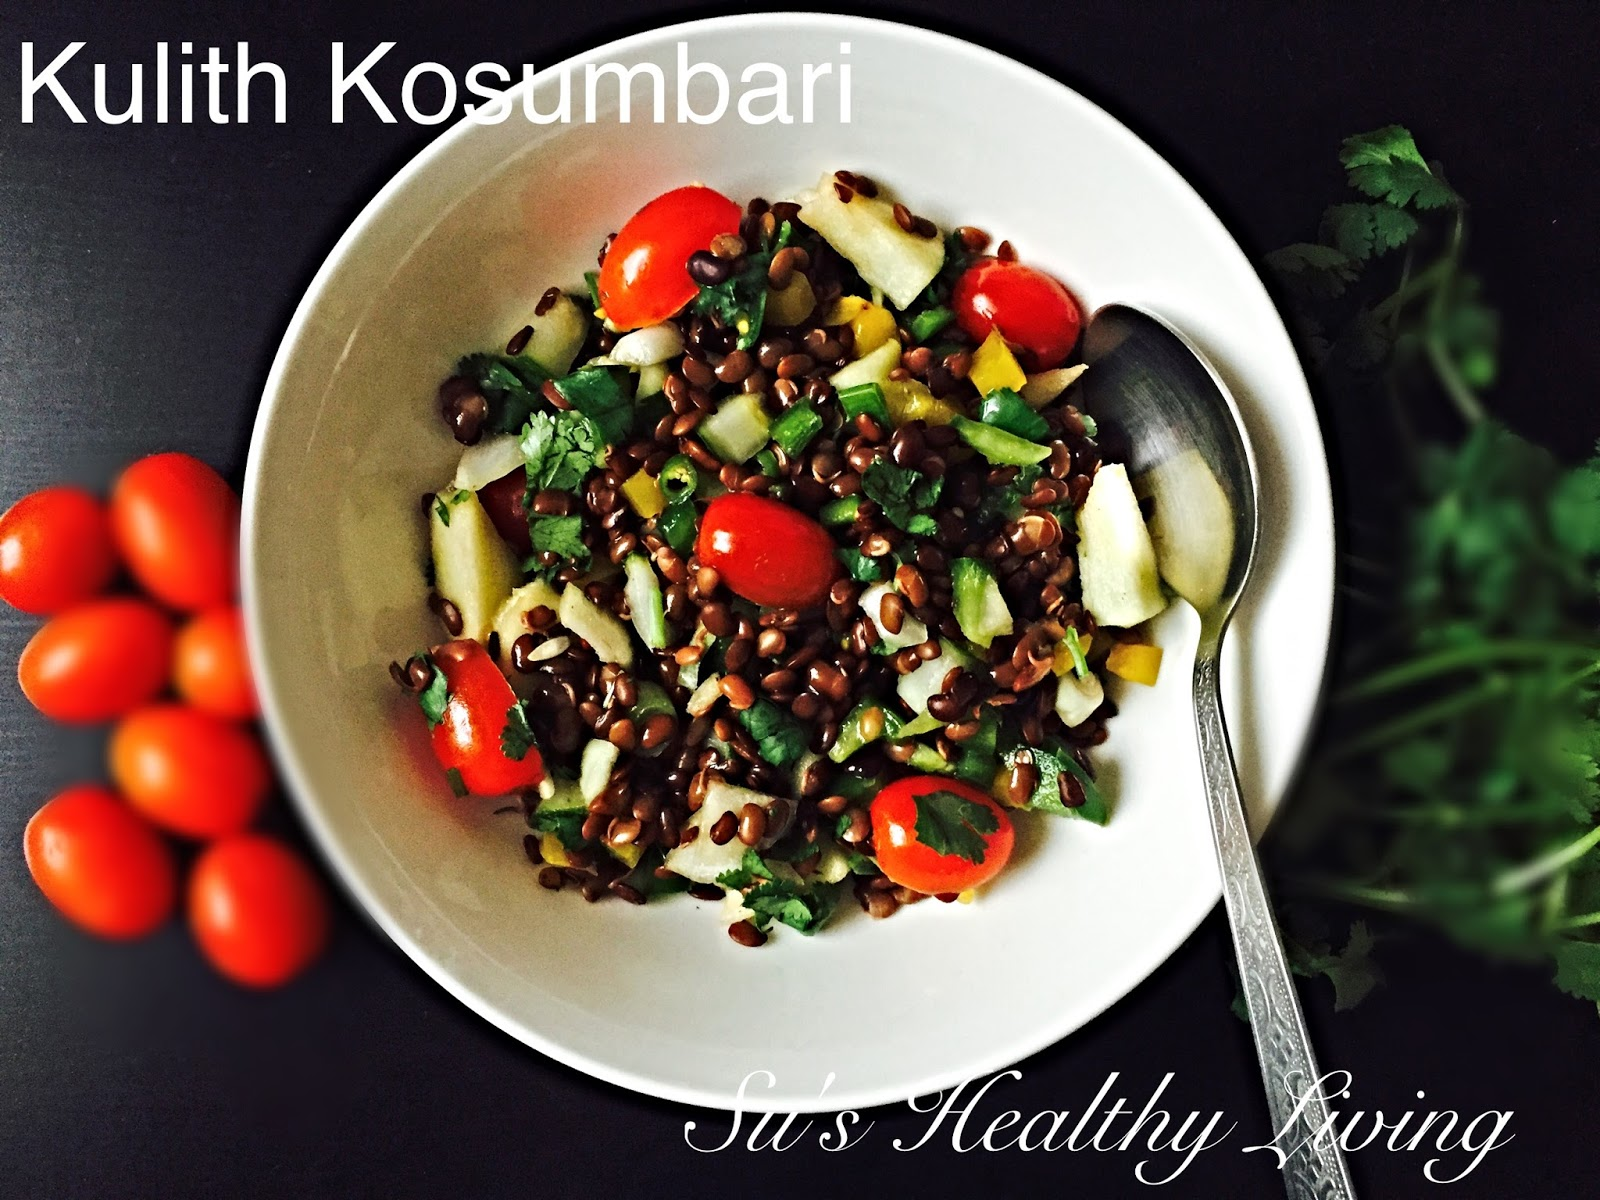 Sus healthy living kulith kosumbari horse gram salad diabetes it is that time of the month again when we bring to you very healthy diabetic friendly and weight watcher friendly recipes forumfinder Choice Image